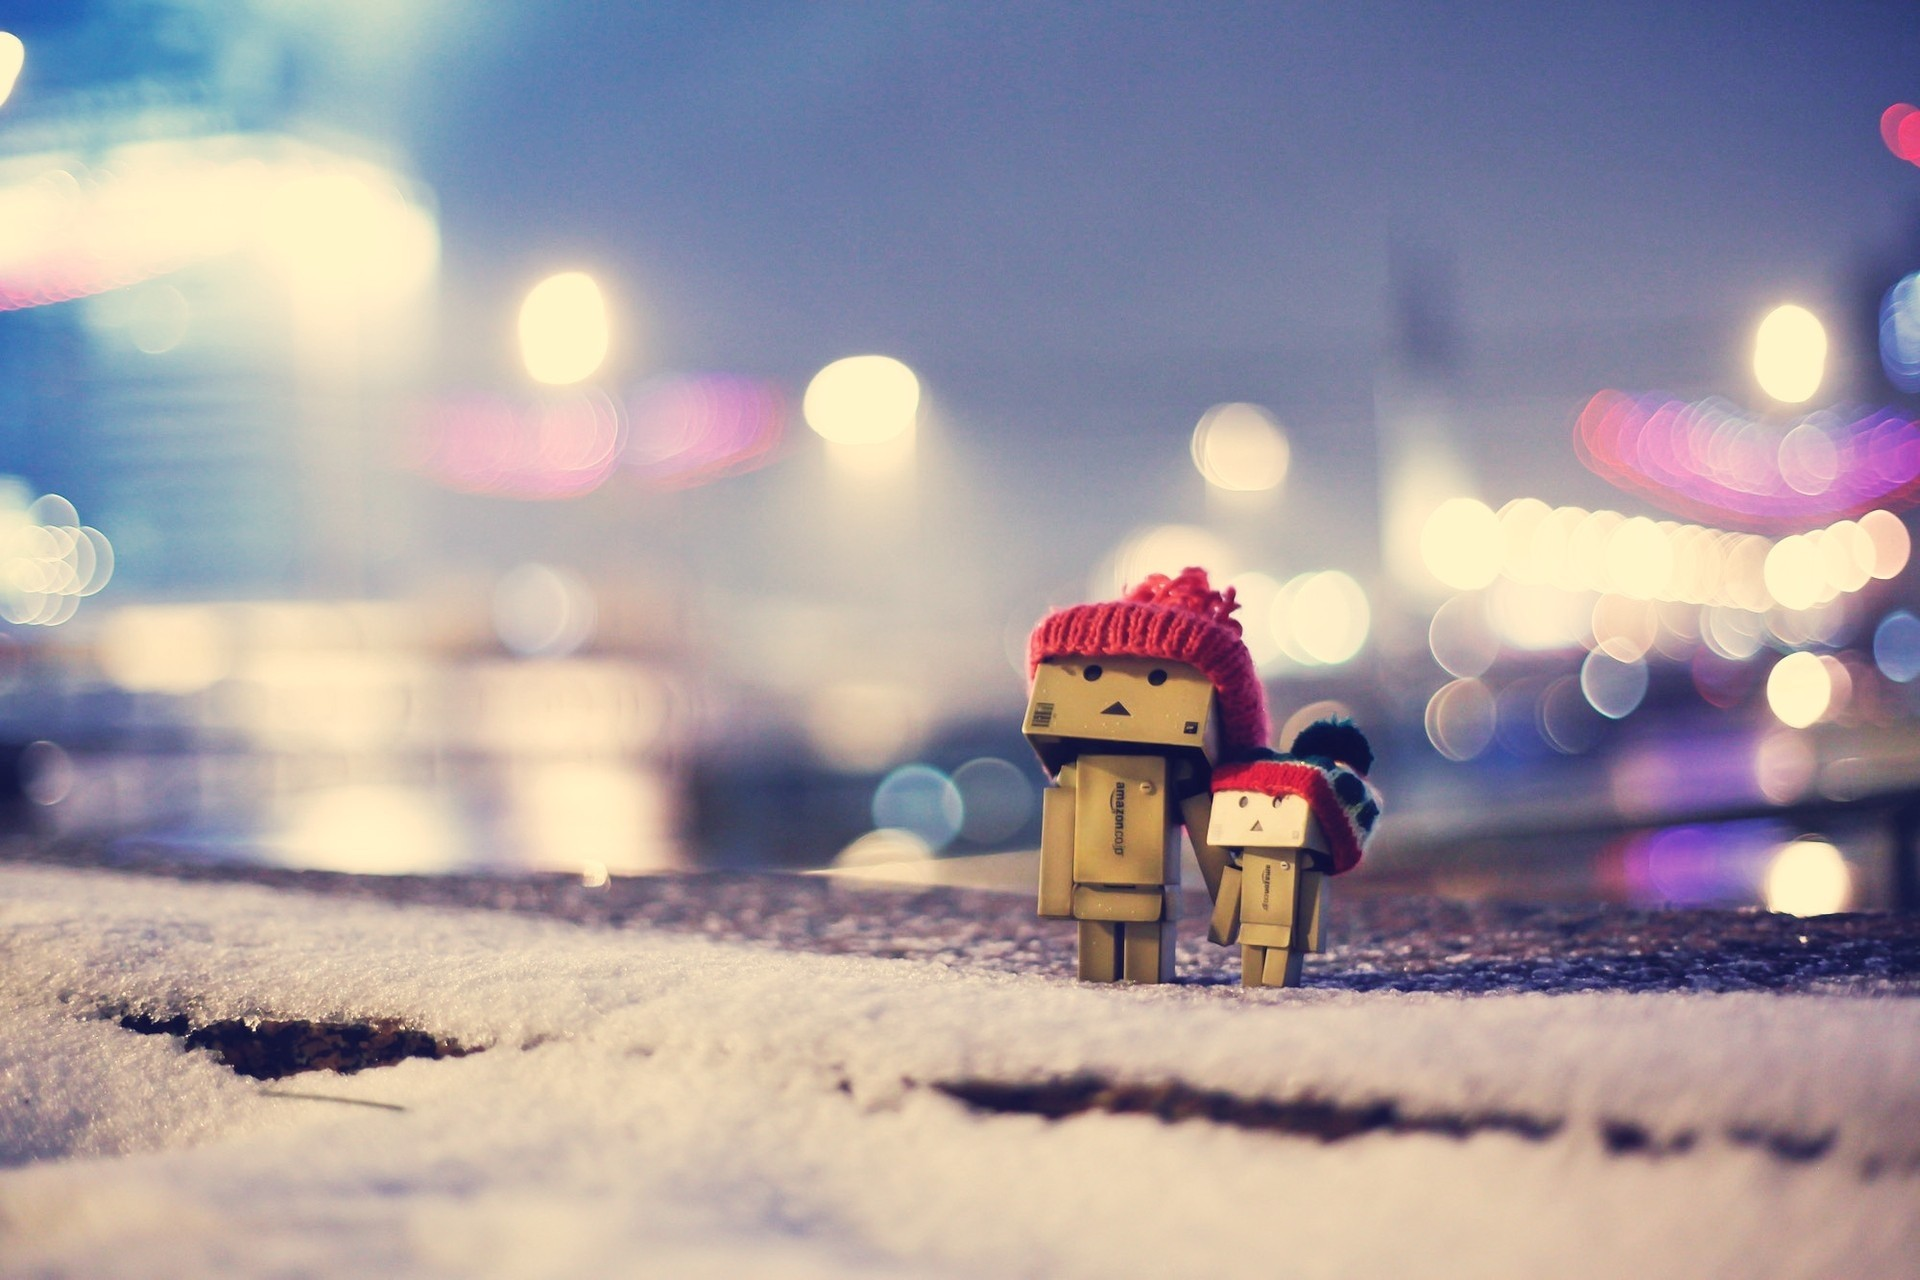 Sweet Cute Wallpapers 240x320 Danbo In Winter Dress Hd Cute 4k Wallpapers Images